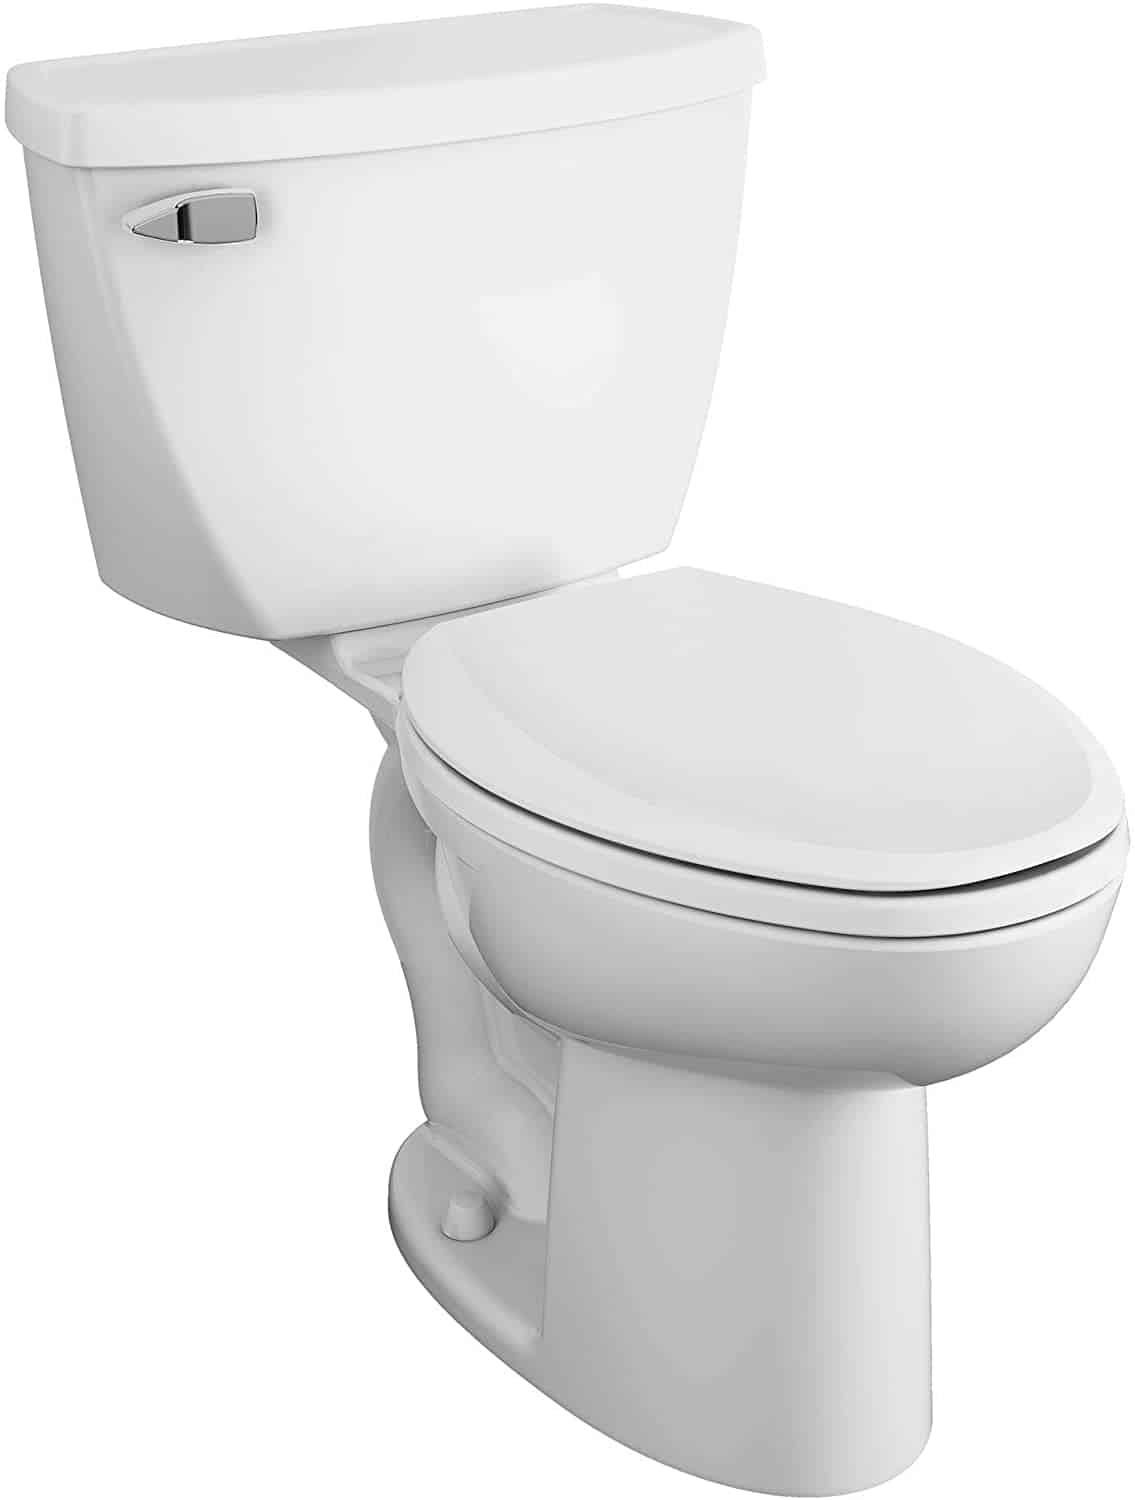 American Standard 2467016.020 Cadet Right Height Elongated Pressure-Assisted Toilet,